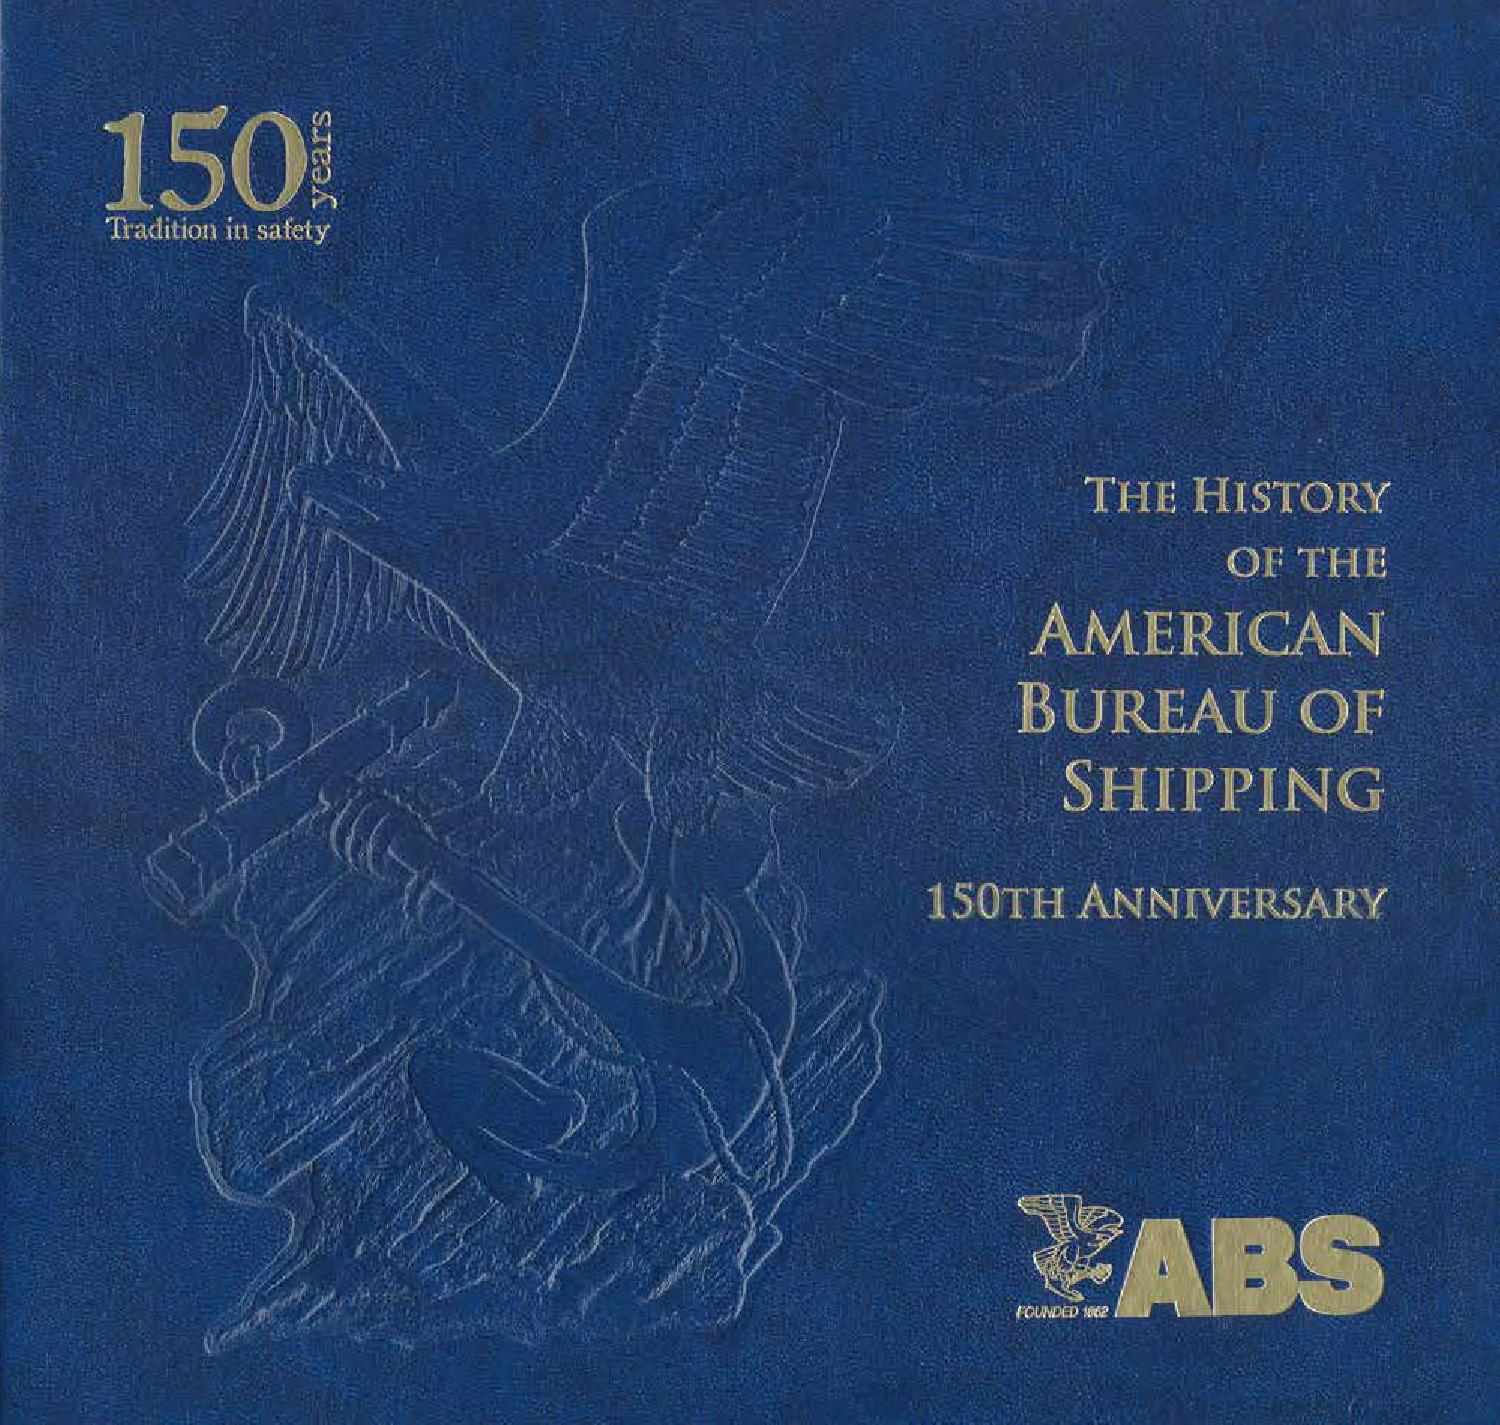 The History of the American Bureau of Shipping: 150th